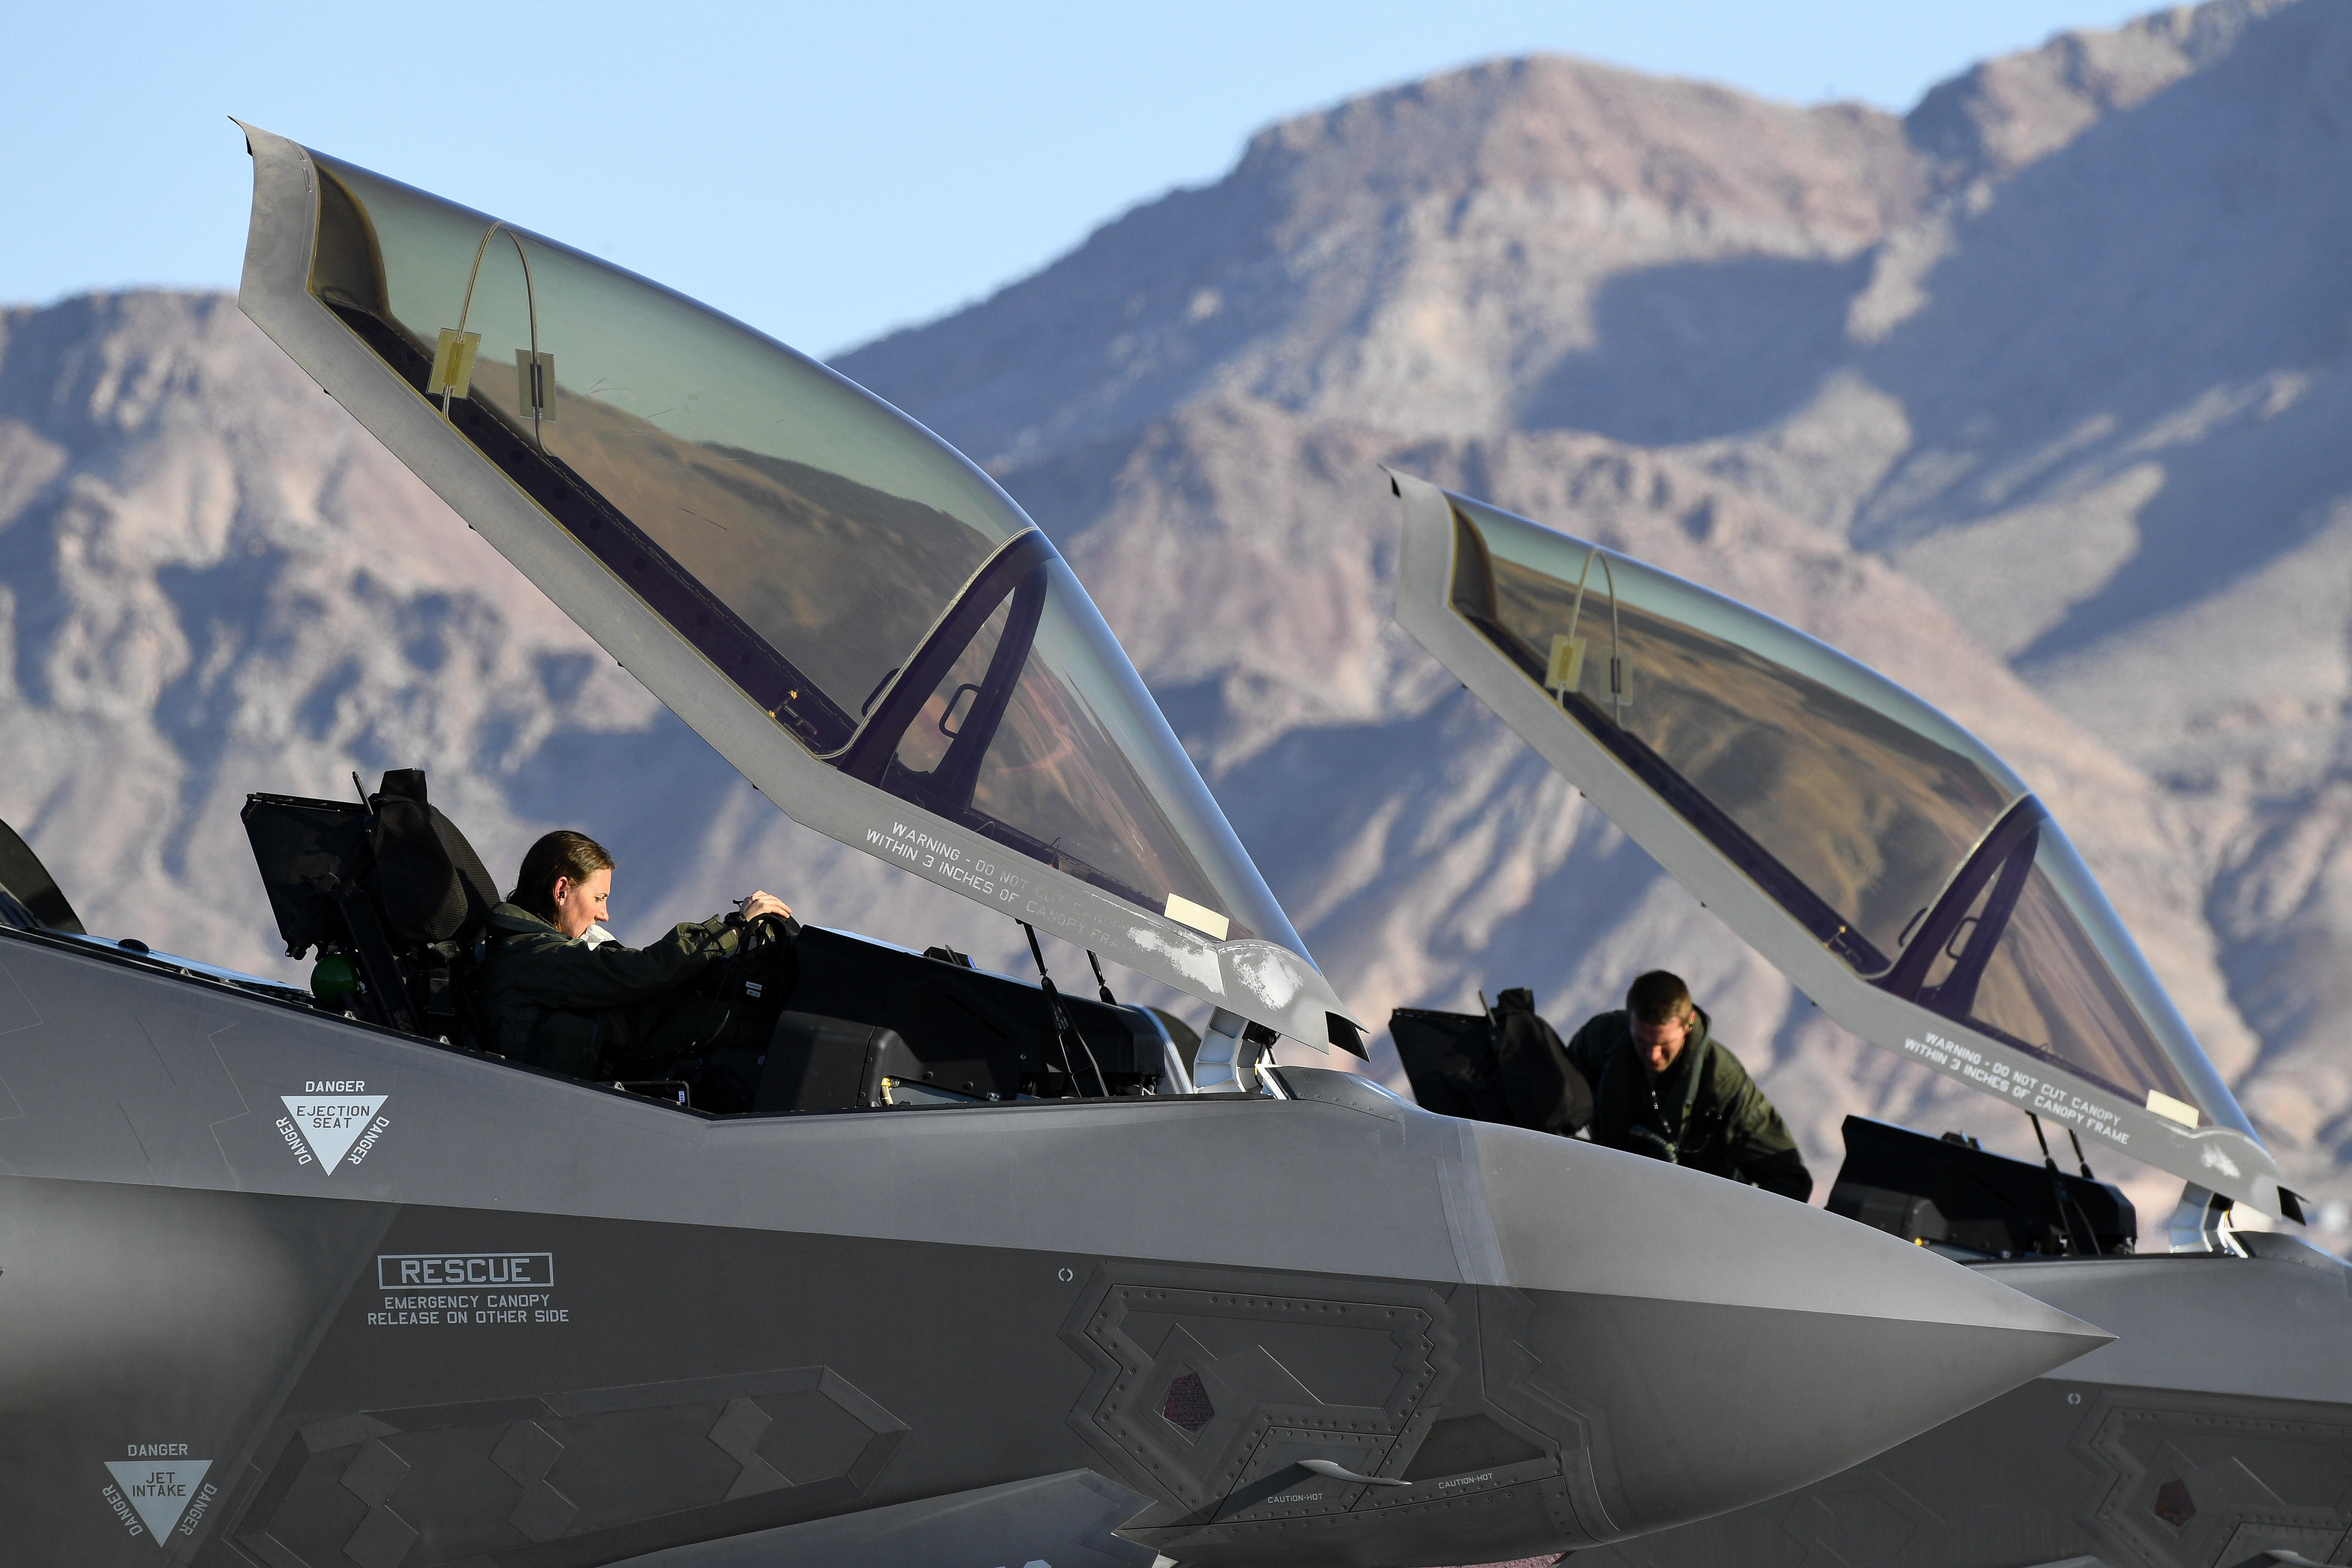 F-35A Lightning II pilots return after flying a sortie during exercise Red Flag 20-1 at Nellis Air Force Base, Nev., Feb. 3, 2020. Red Flag is the Air Force's premiere large-scale combat exercise. (R. Nial Bradshaw/Air Force)